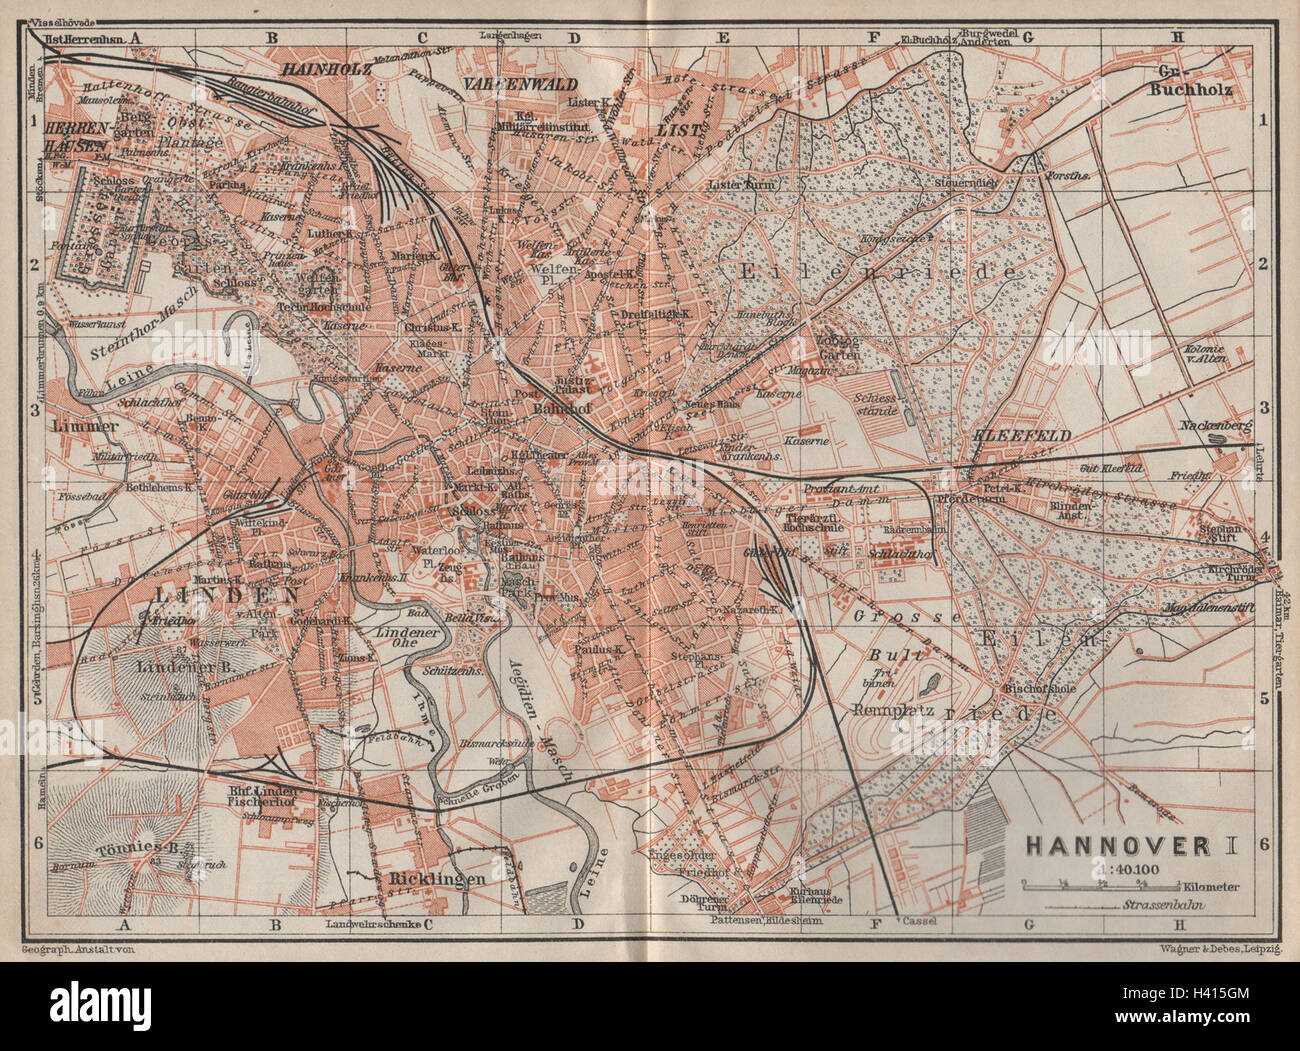 HANNOVER antique town city stadtplan I Hanover Lower Saxony karte